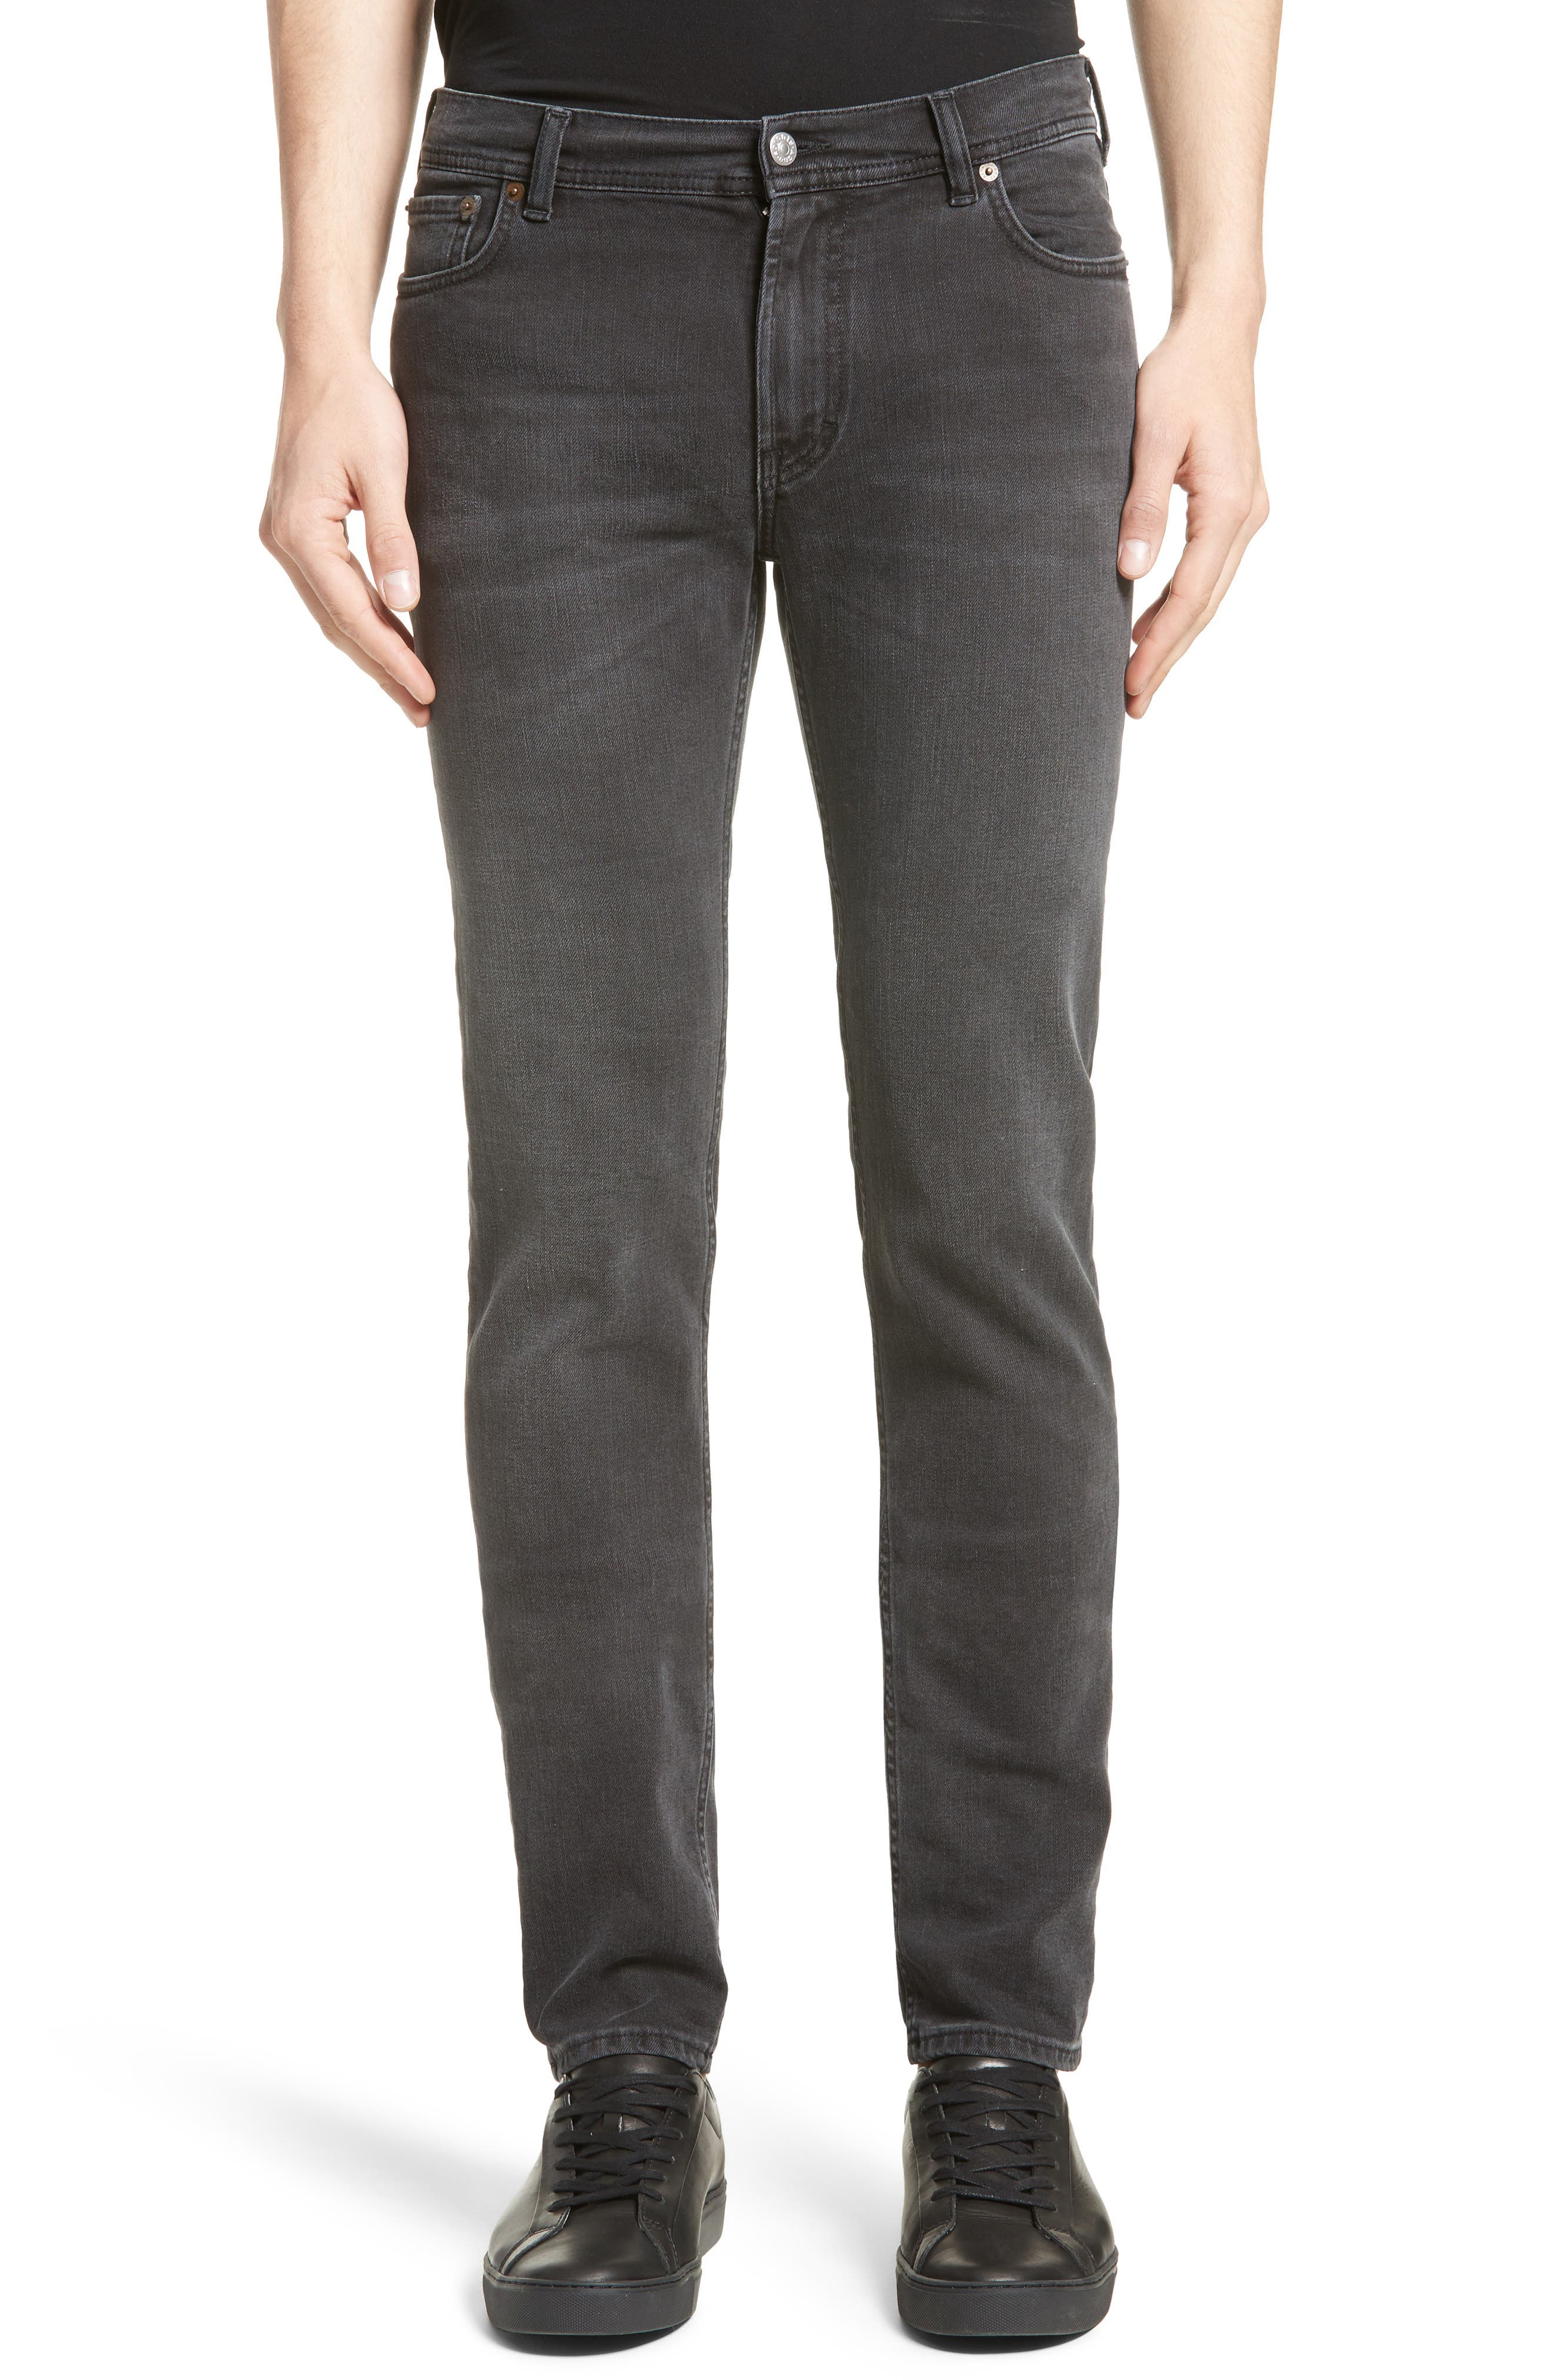 North Skinny Fit Jeans,                         Main,                         color, Used Black